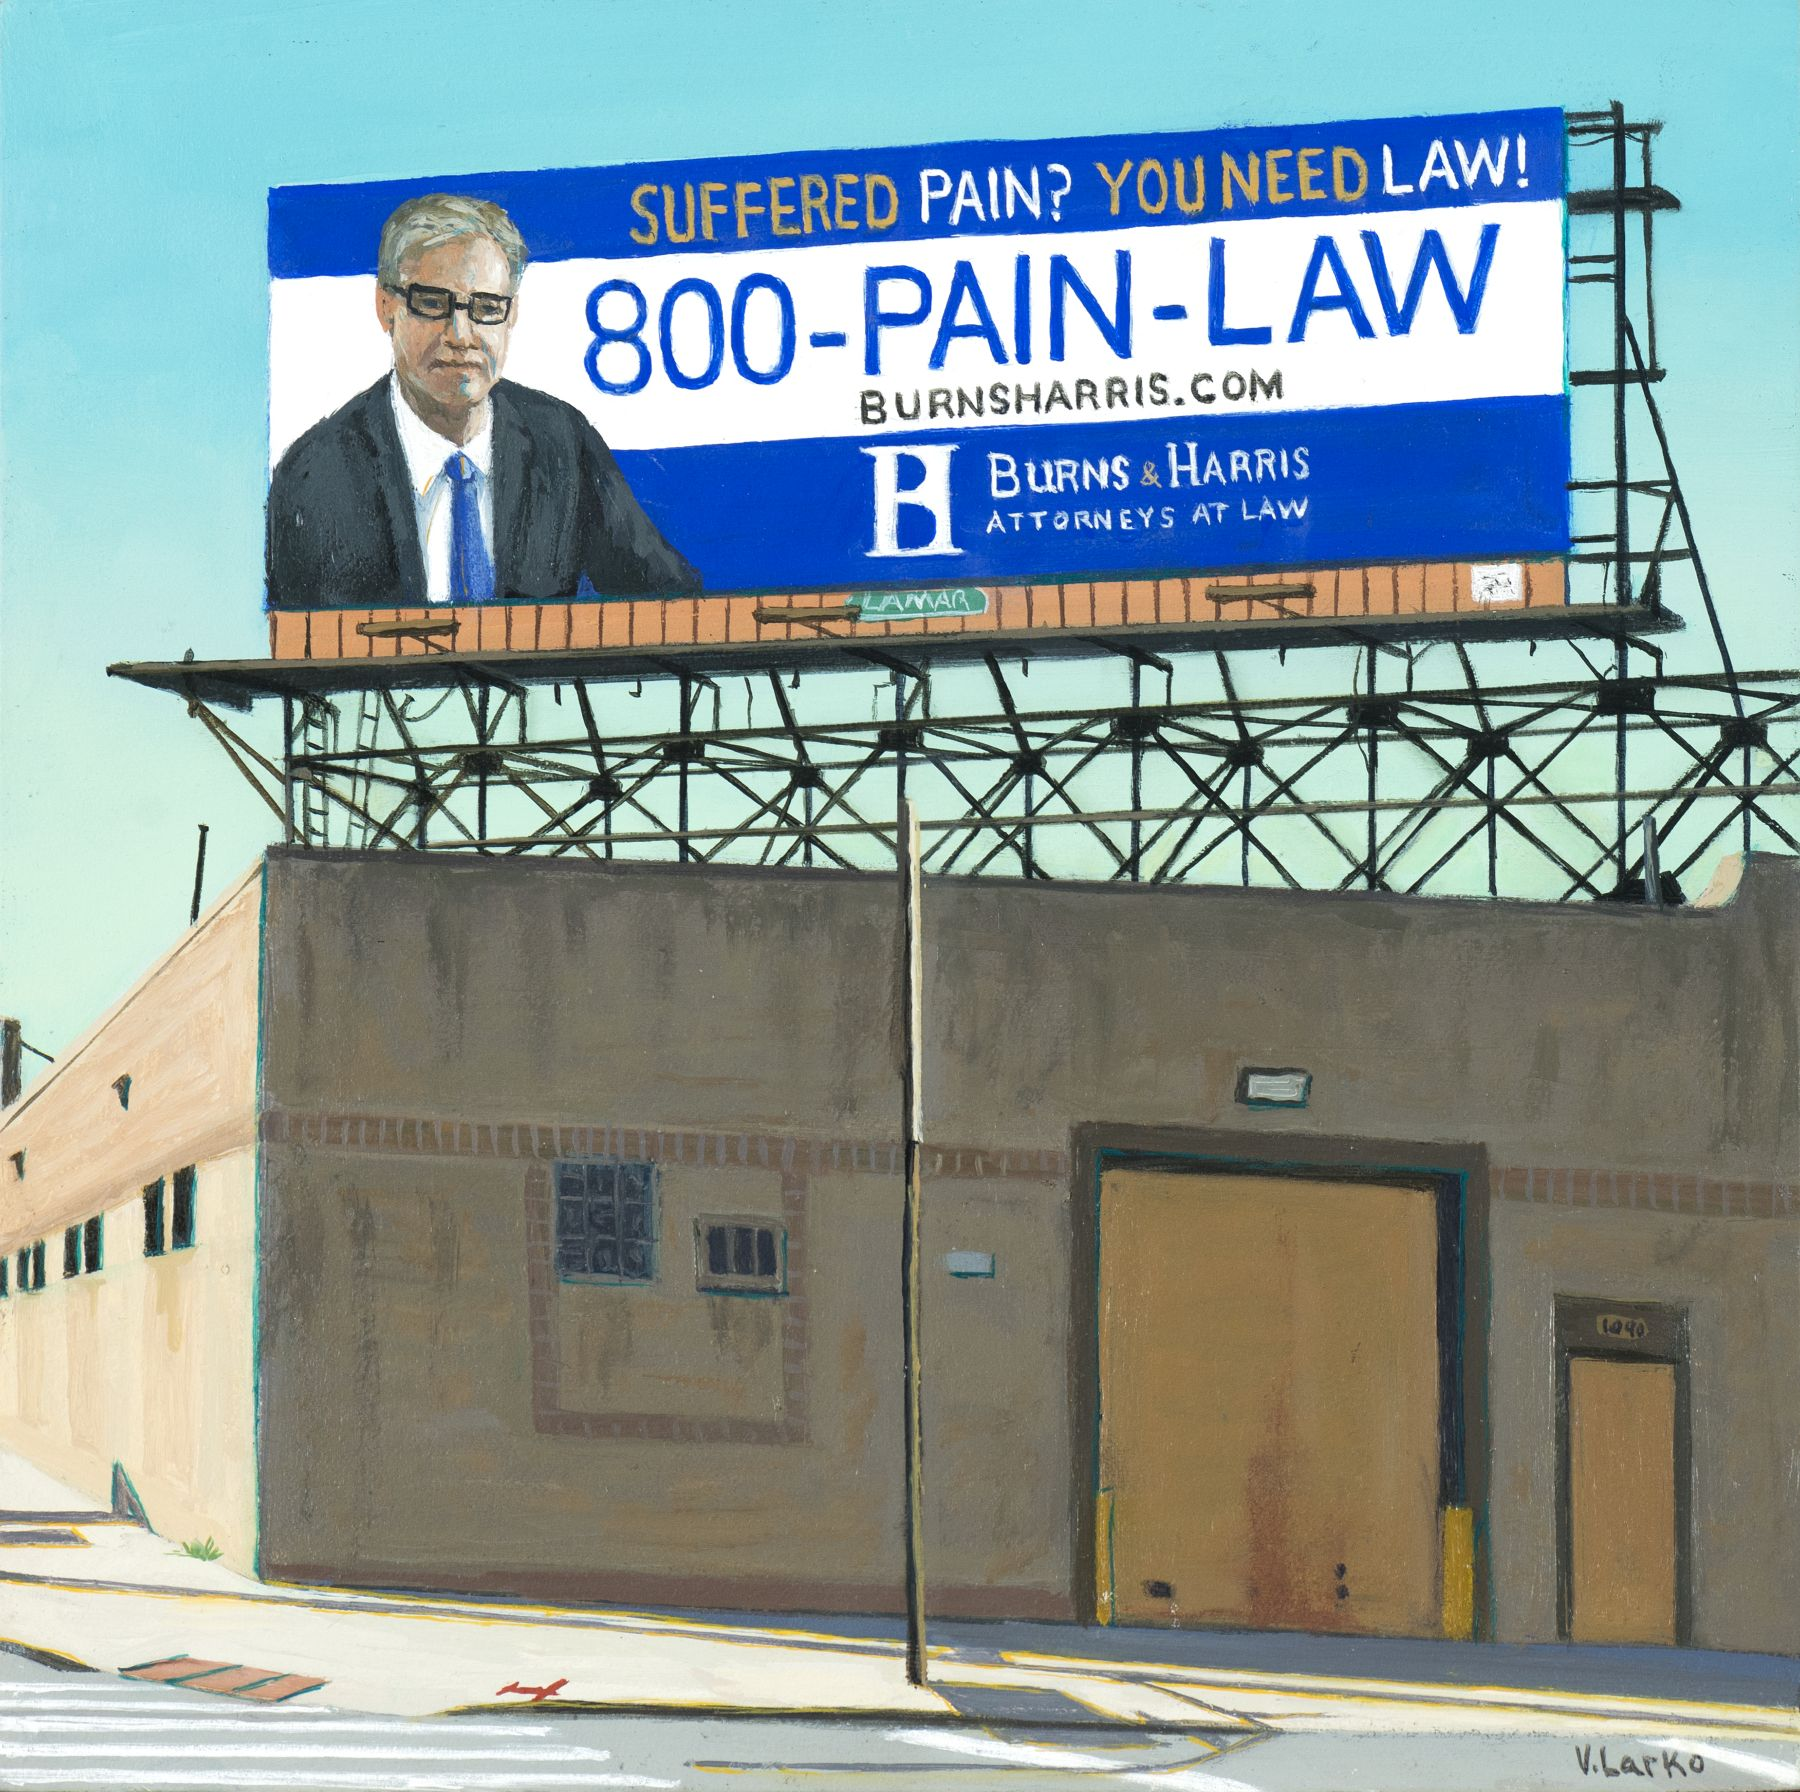 Valeri Larko painting titled Sign of the Times XII (Pain Law), 2019, oil on panel, 10 x 10 inches imagery urban landscape featuring blighted brown building and billboard advertising Burns and Harris injury attorneys